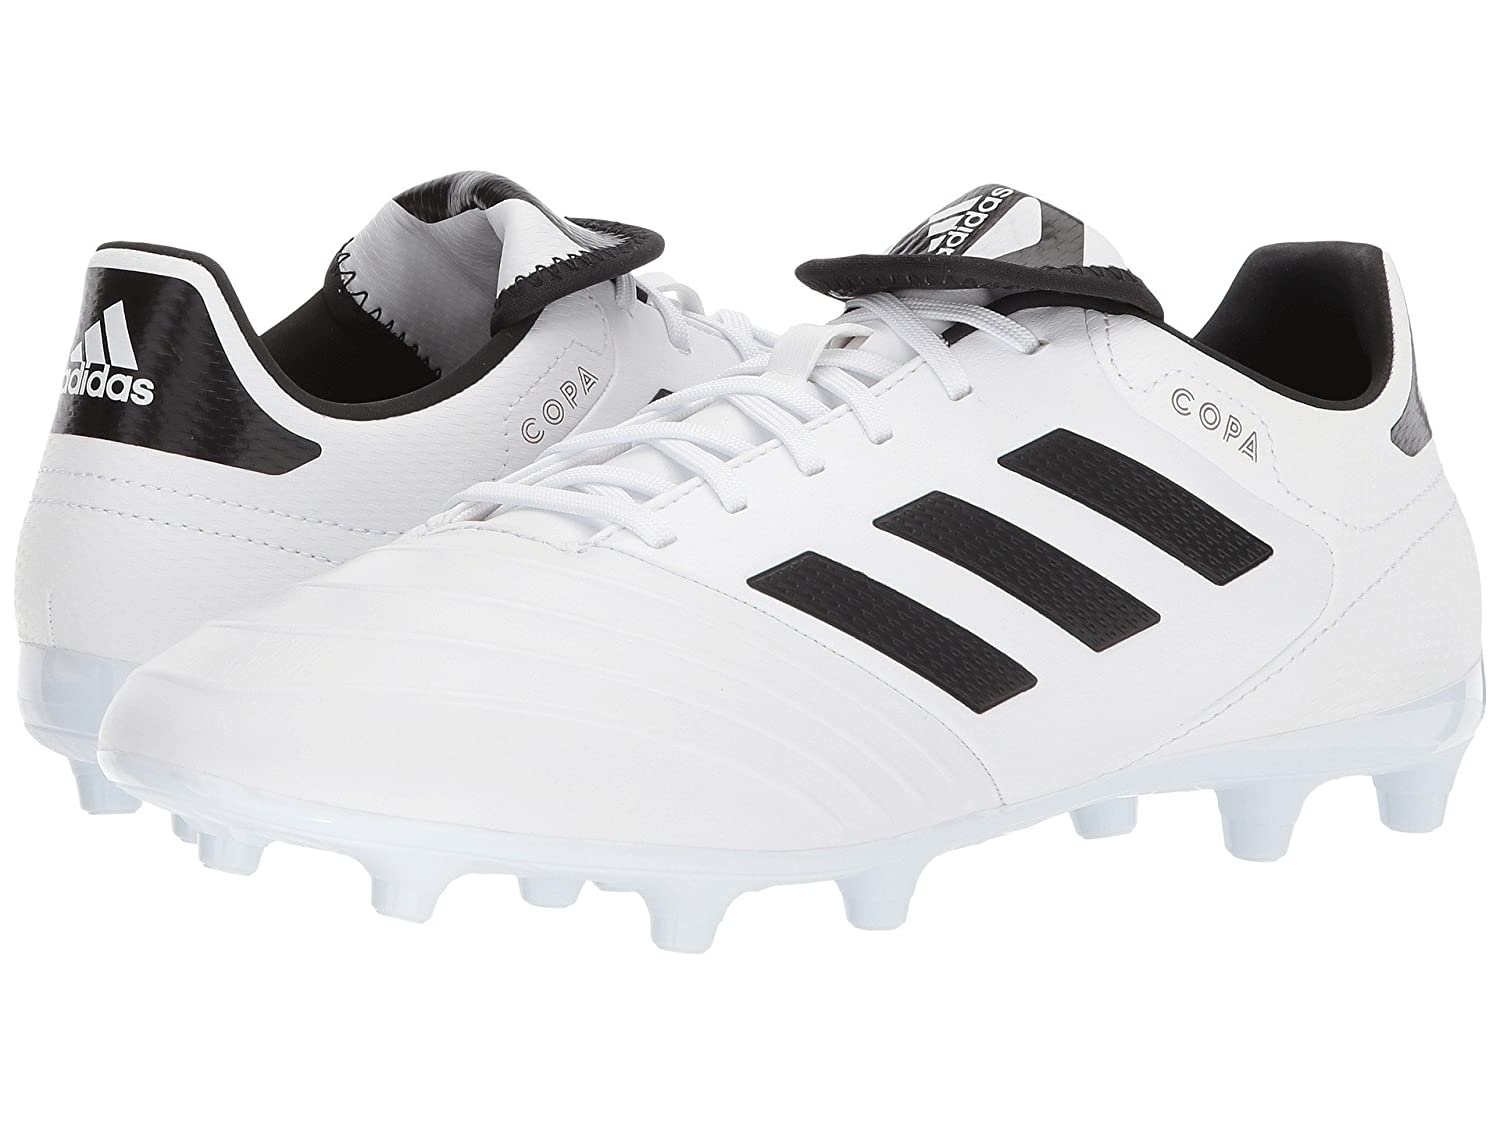 (アディダス) adidas メンズサッカーシューズ靴 Copa 18.3 FG White/Black/Tactile Gold 6.5 (24.5cm) D Medium B07BQF9YXJ